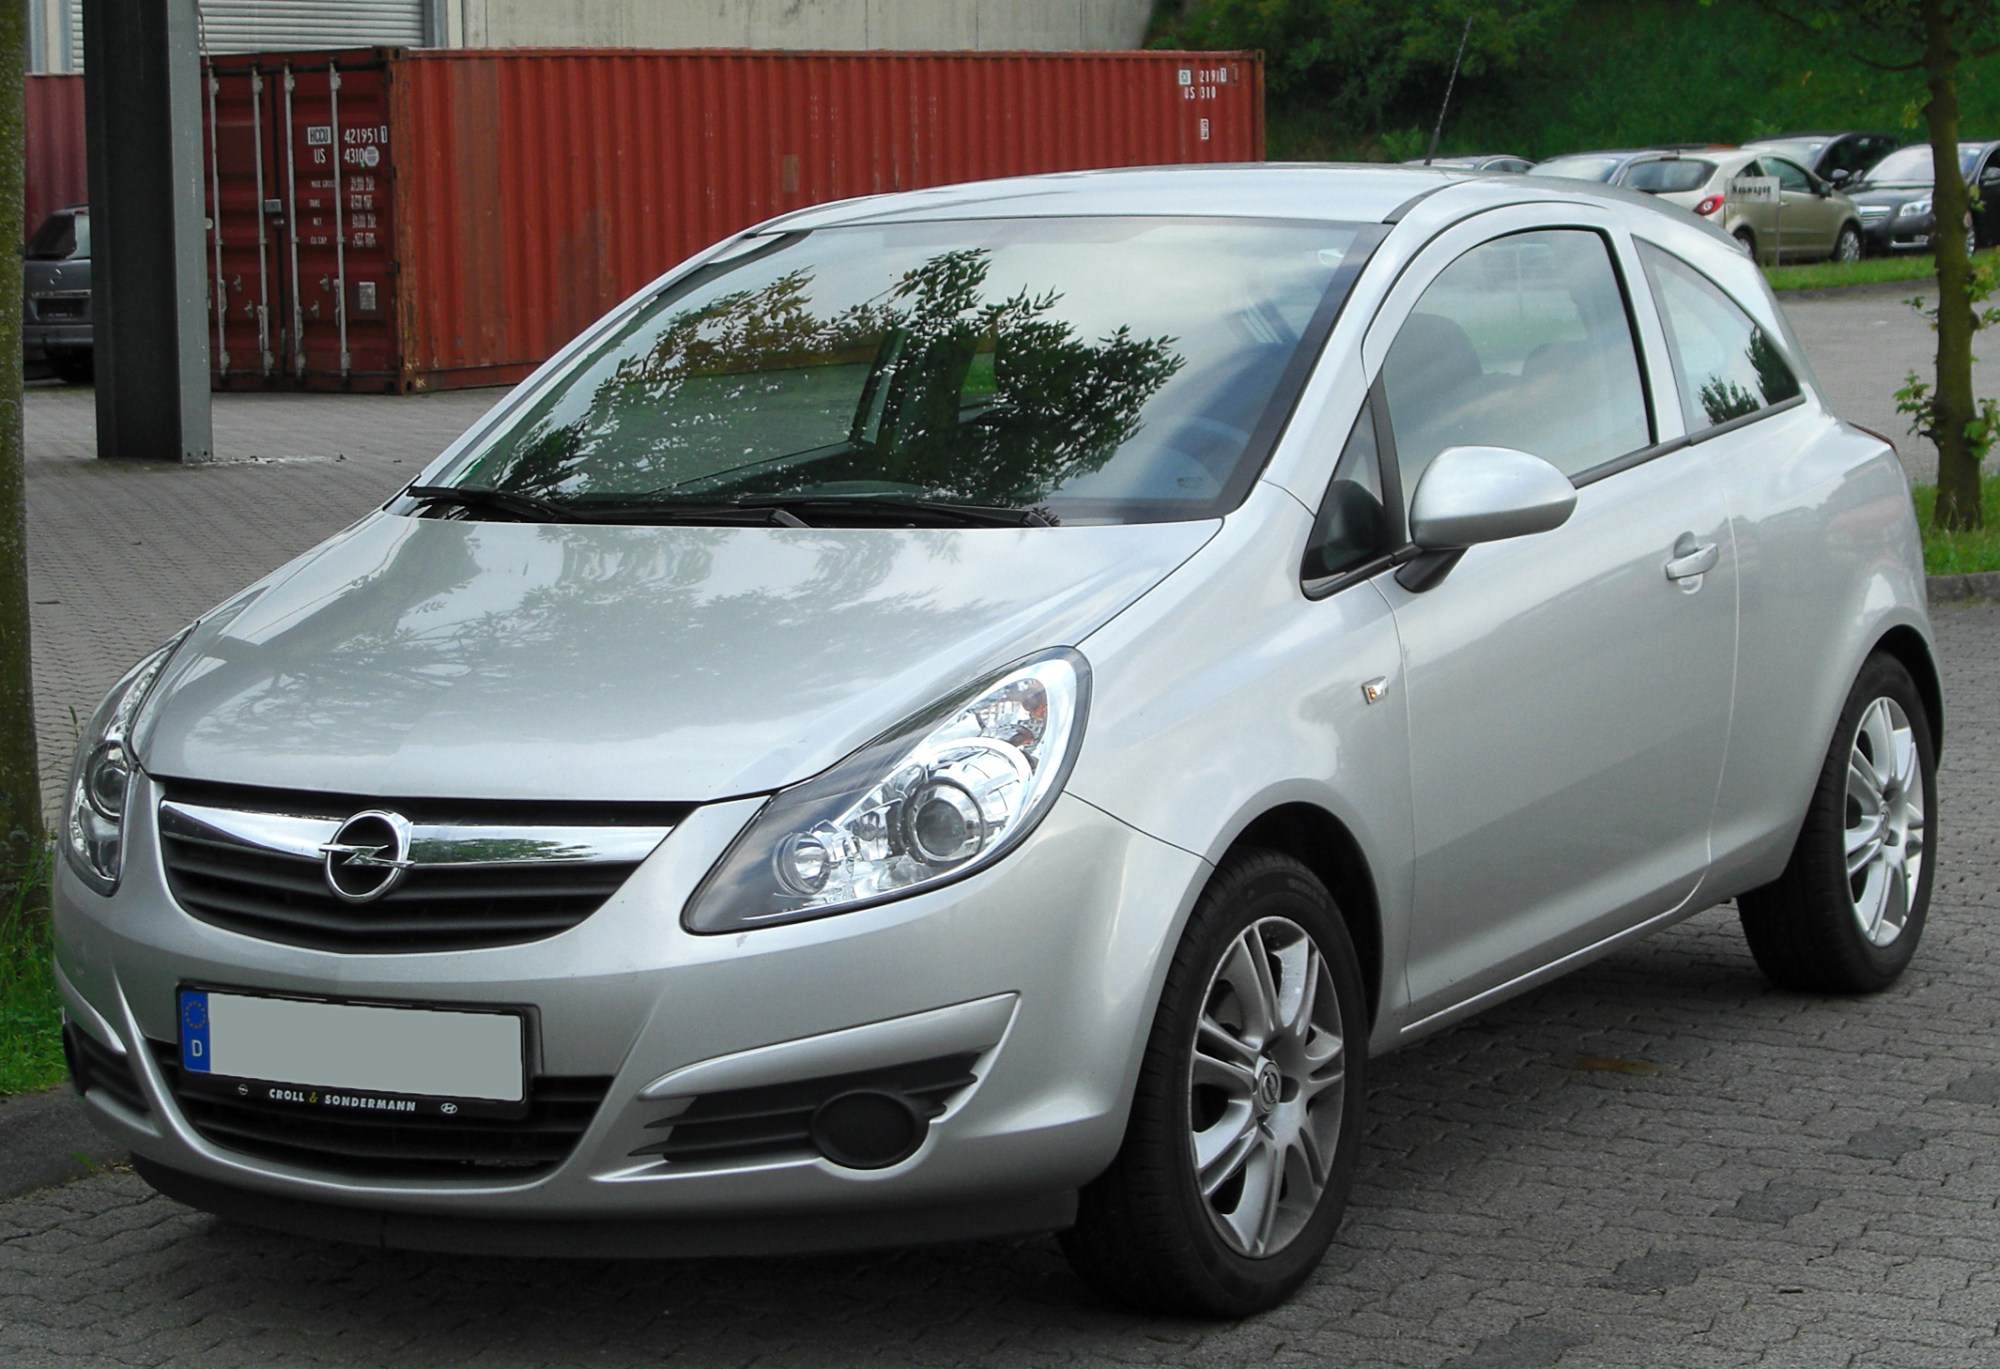 hight resolution of opel corsa d u2013 wikipedia opel corsa 2007